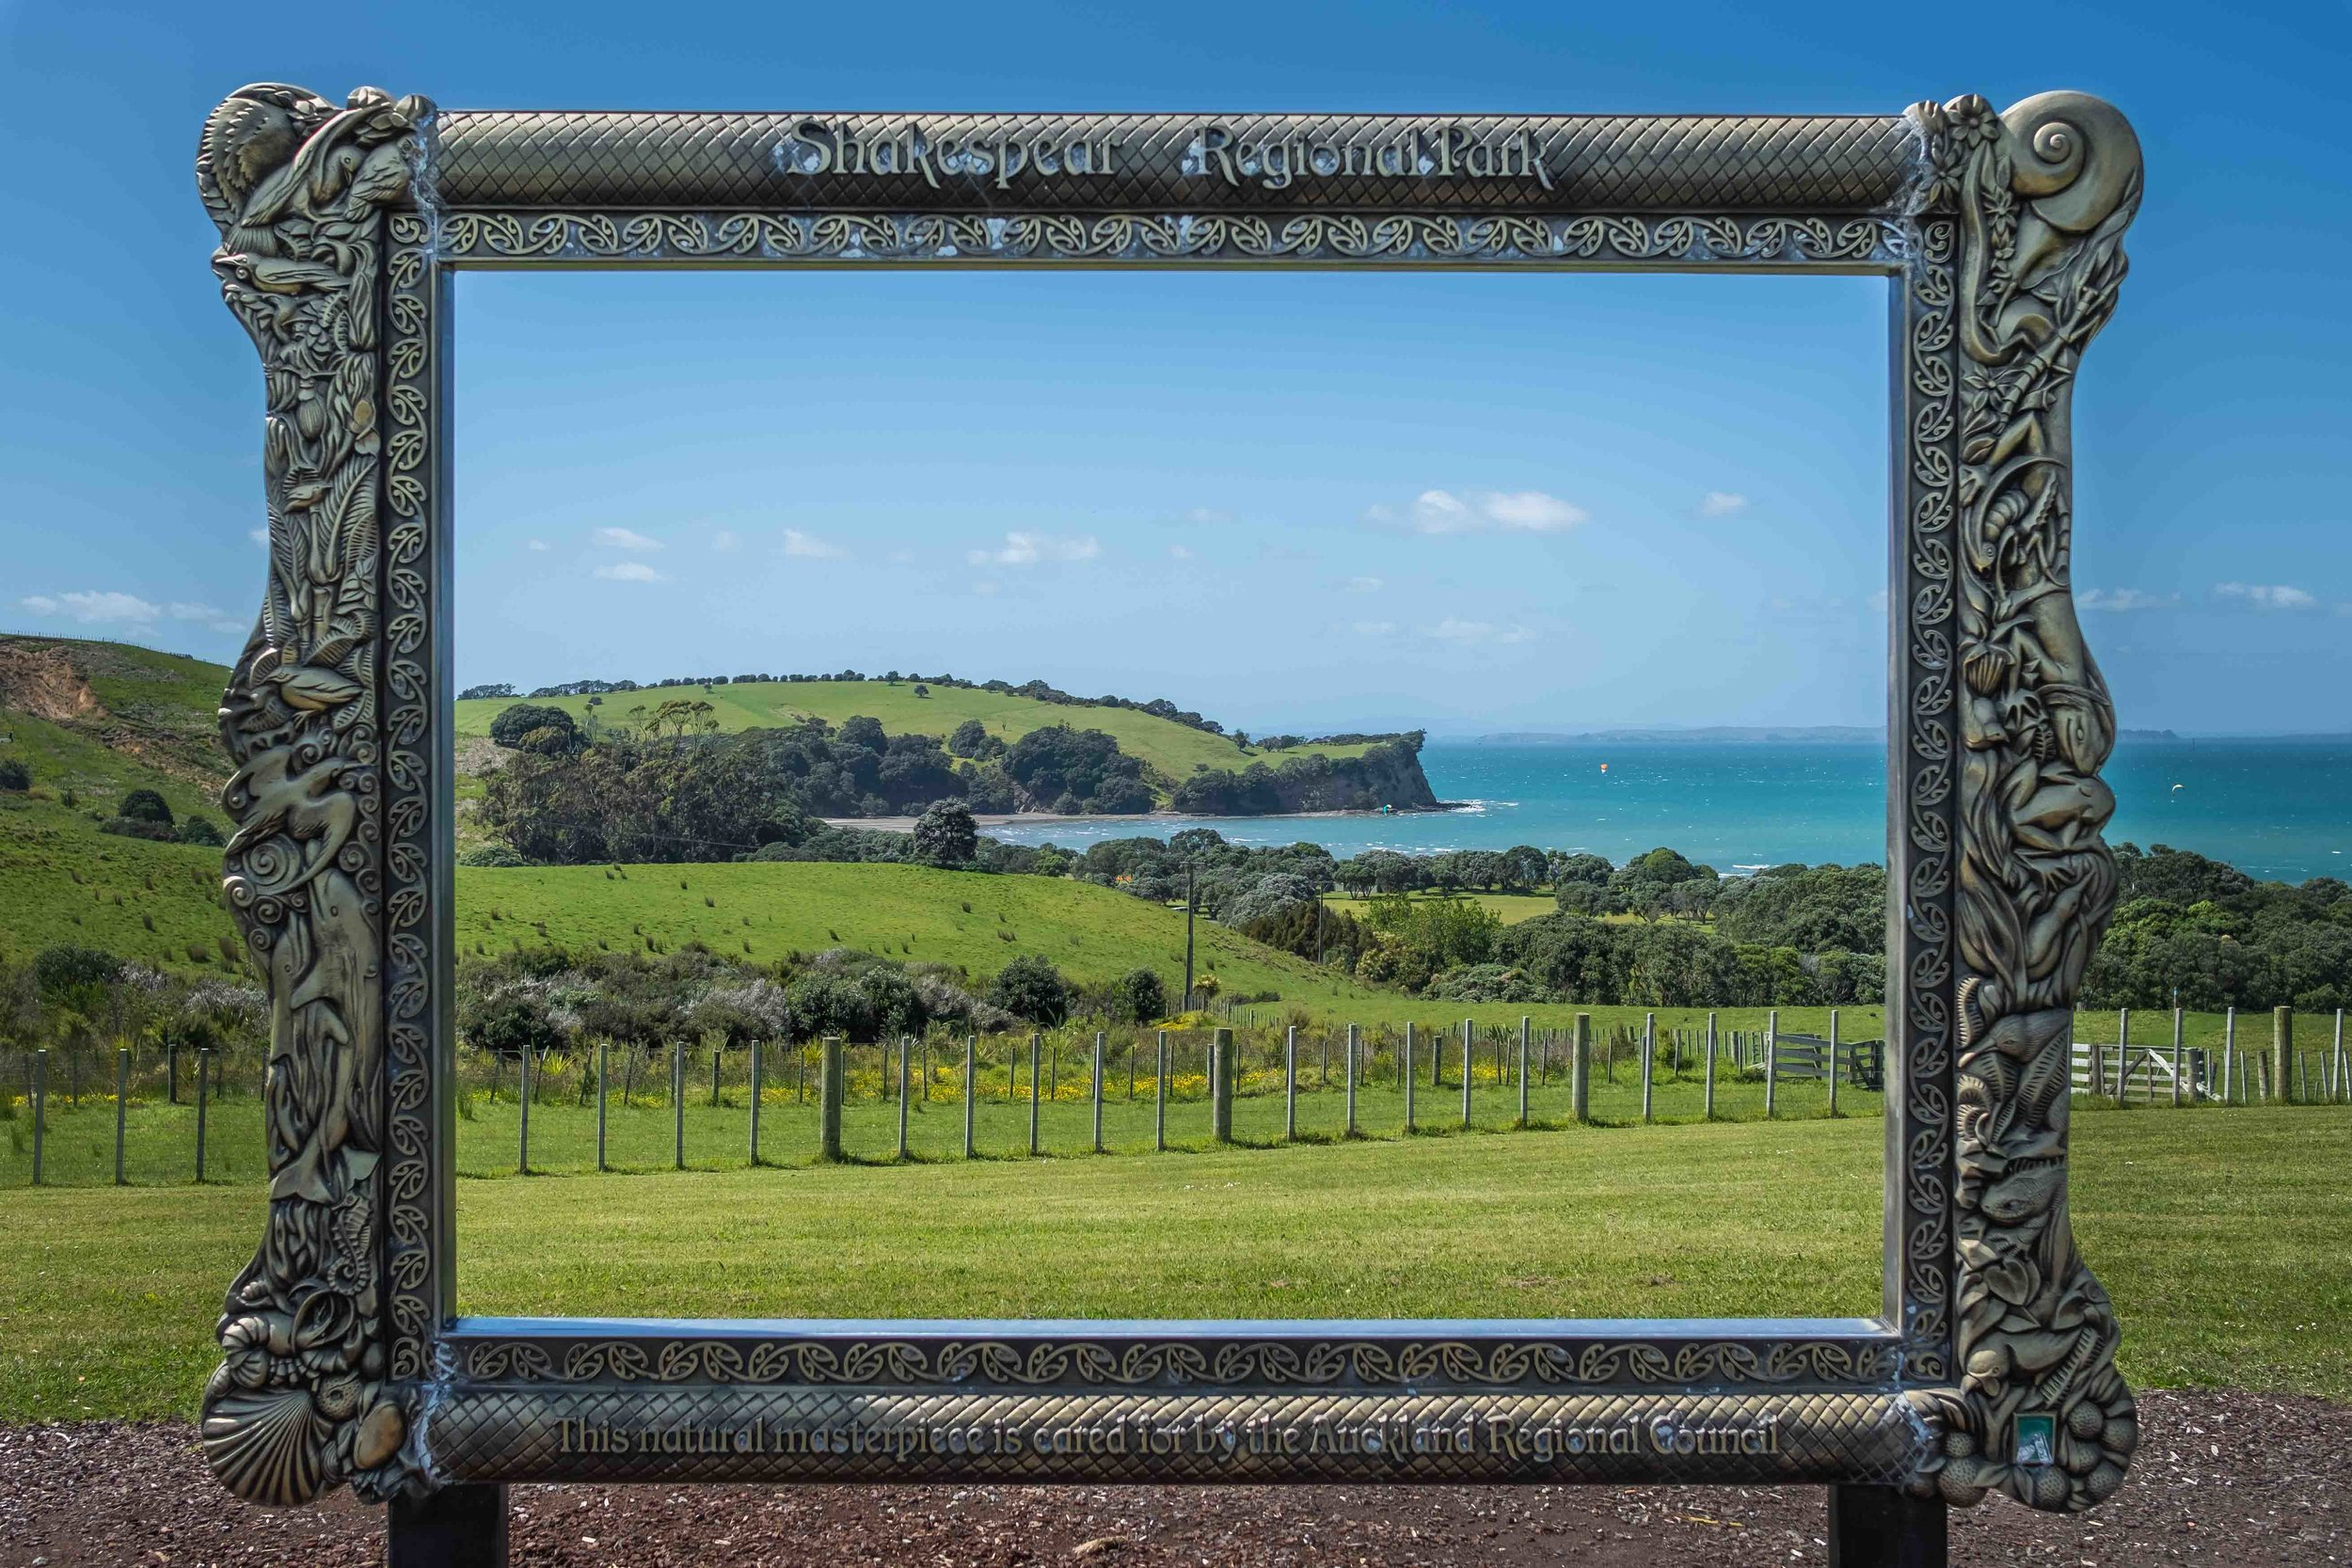 A cool frame at the entrance of Shakespear Regional Park that encapsulates our area pretty well!